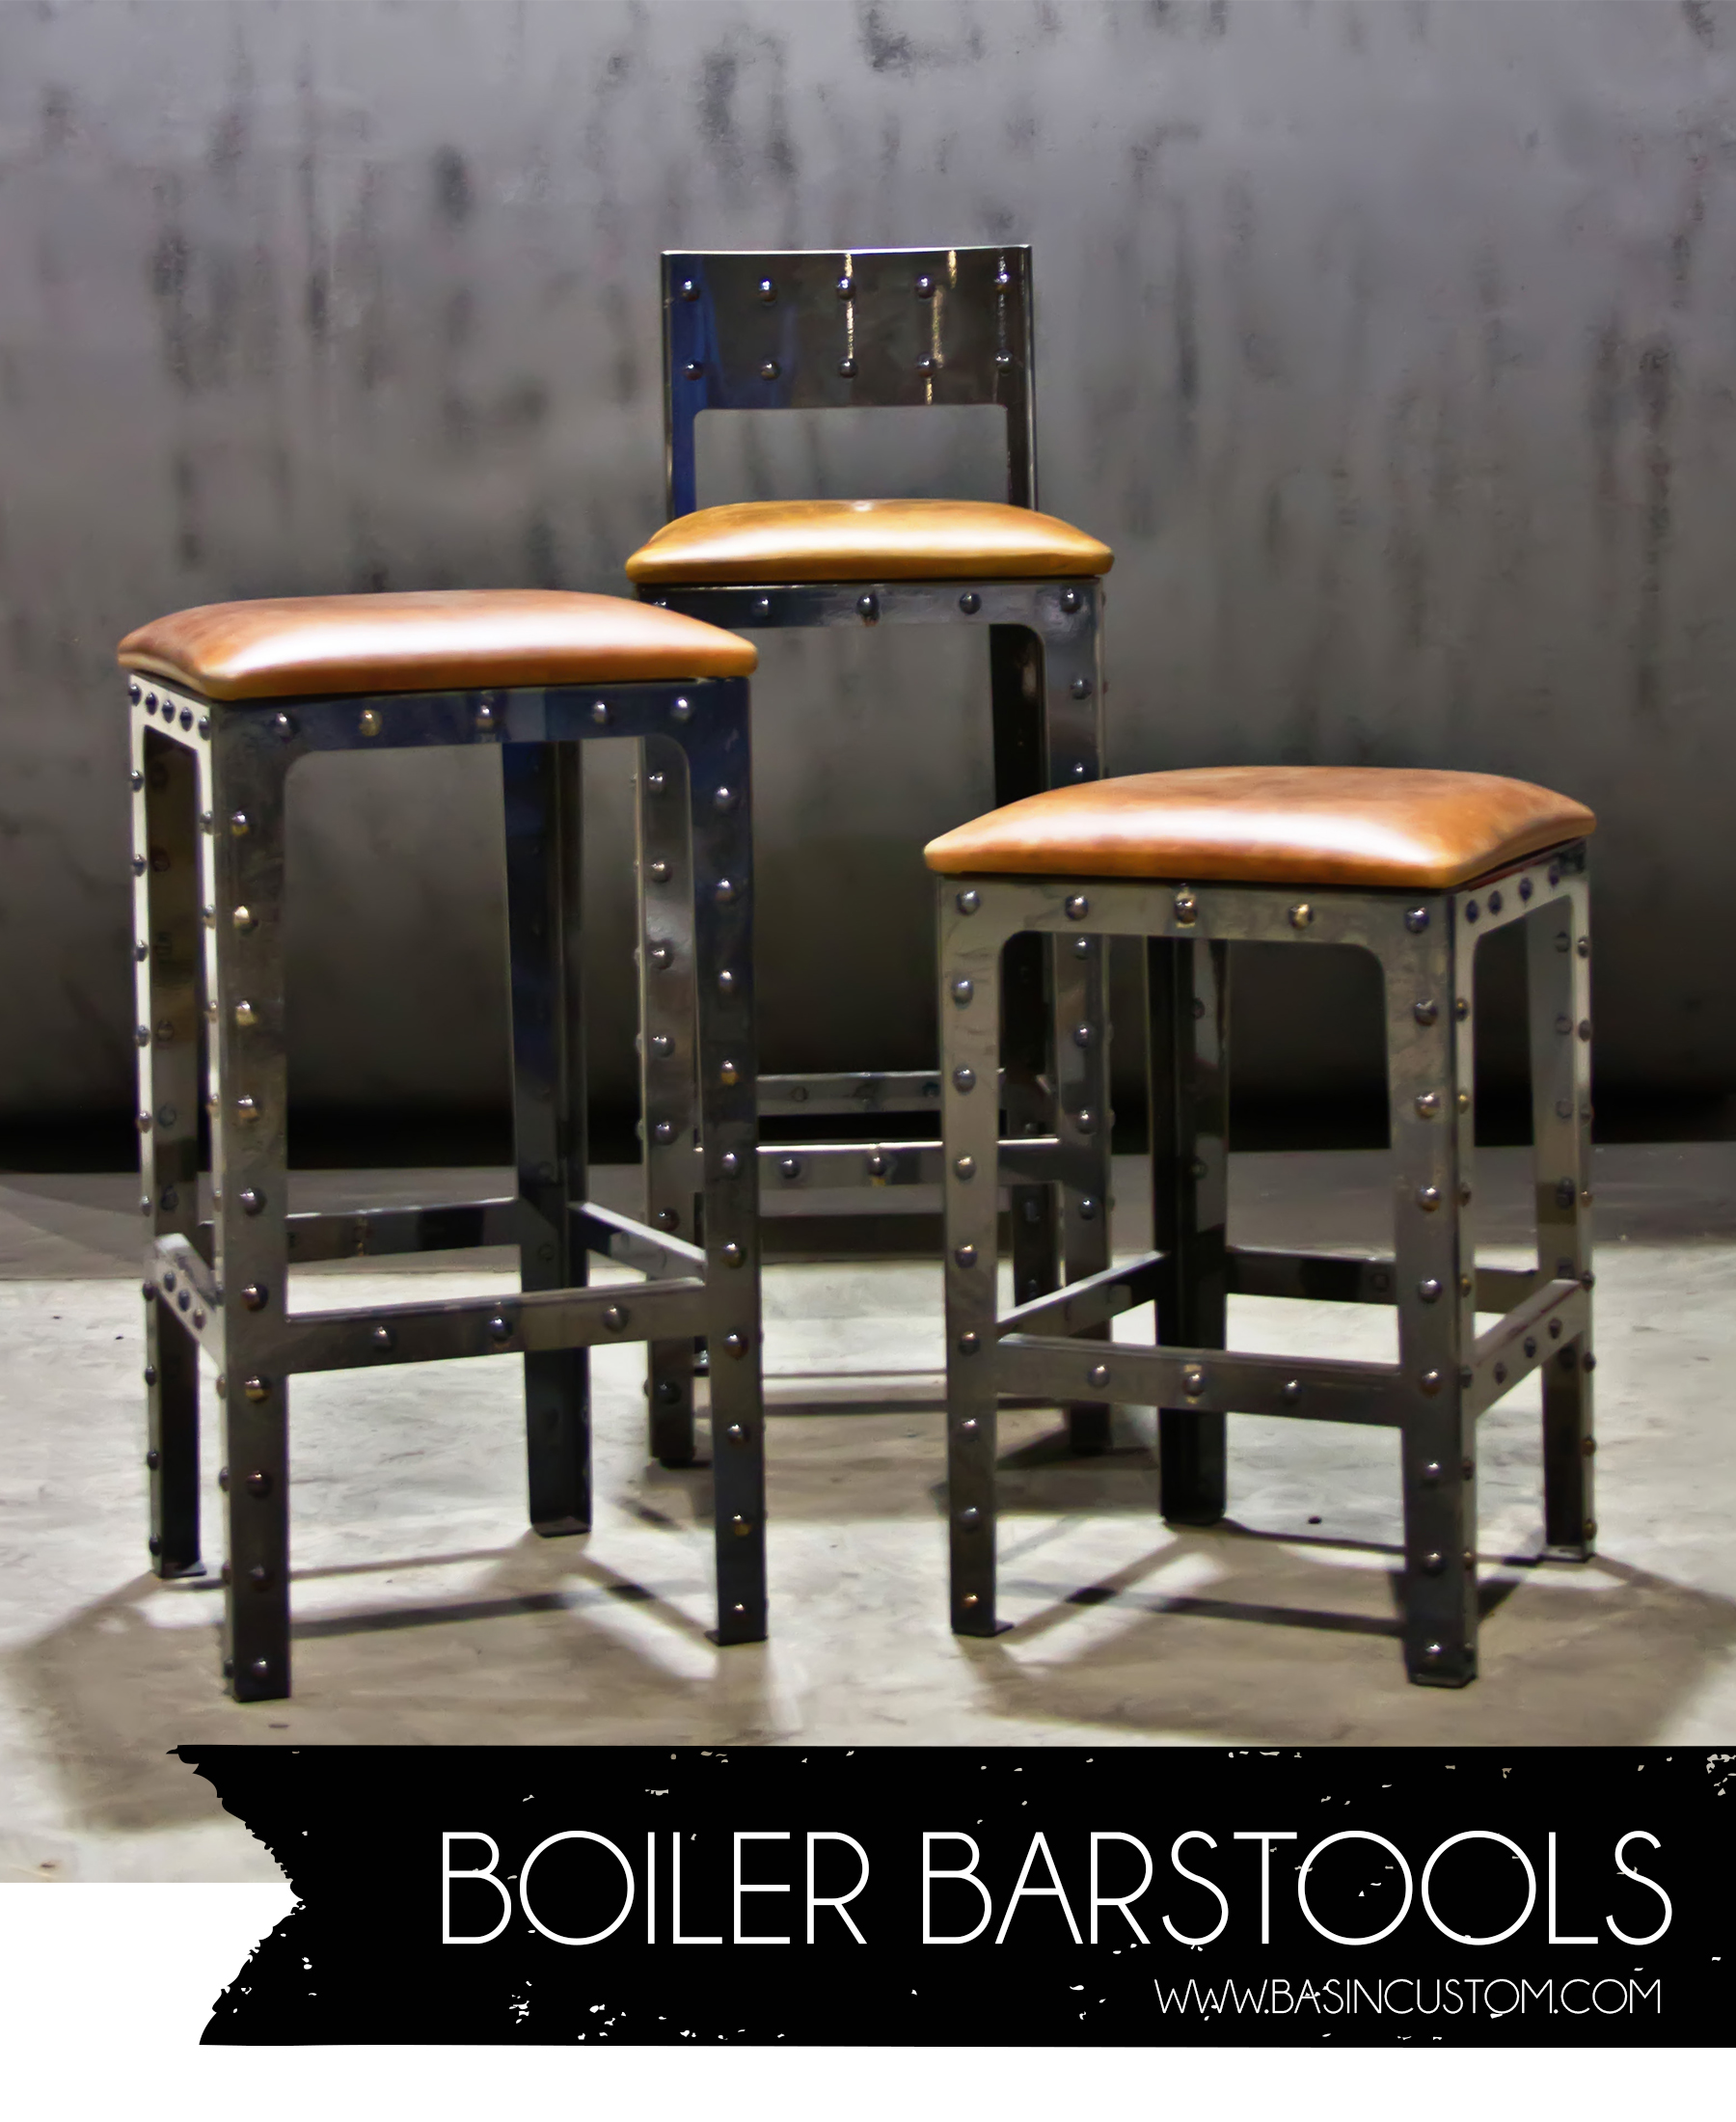 Awesome Industrial Style Bar Stools HomesFeed : Boiler Industrial Style Bar Stools from homesfeed.com size 1800 x 2200 jpeg 1312kB